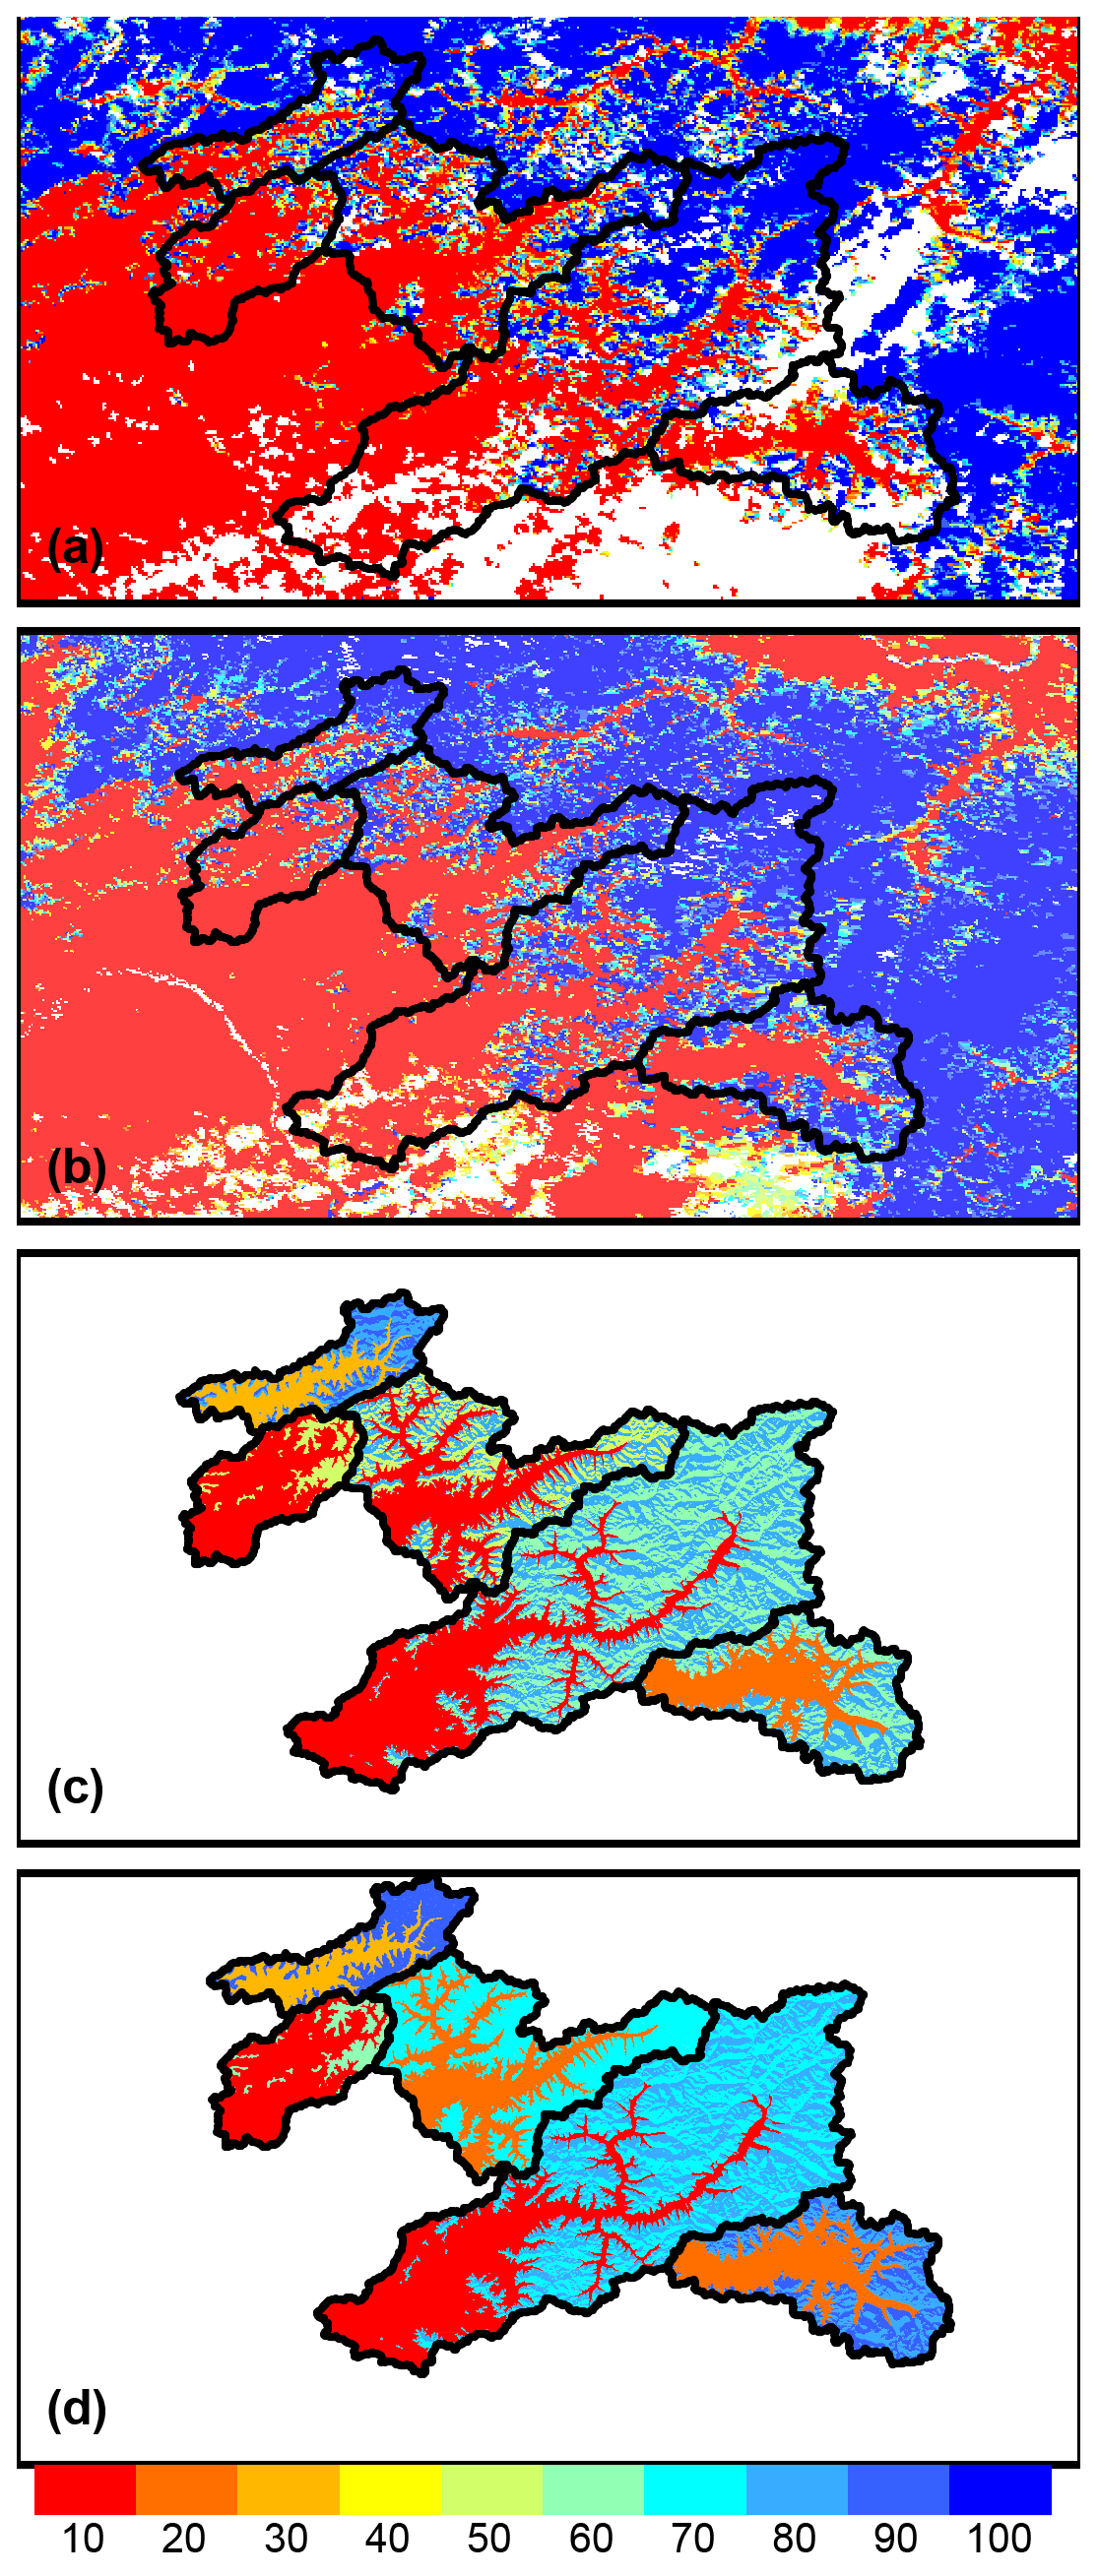 HESS - Using MODIS estimates of fractional snow cover area